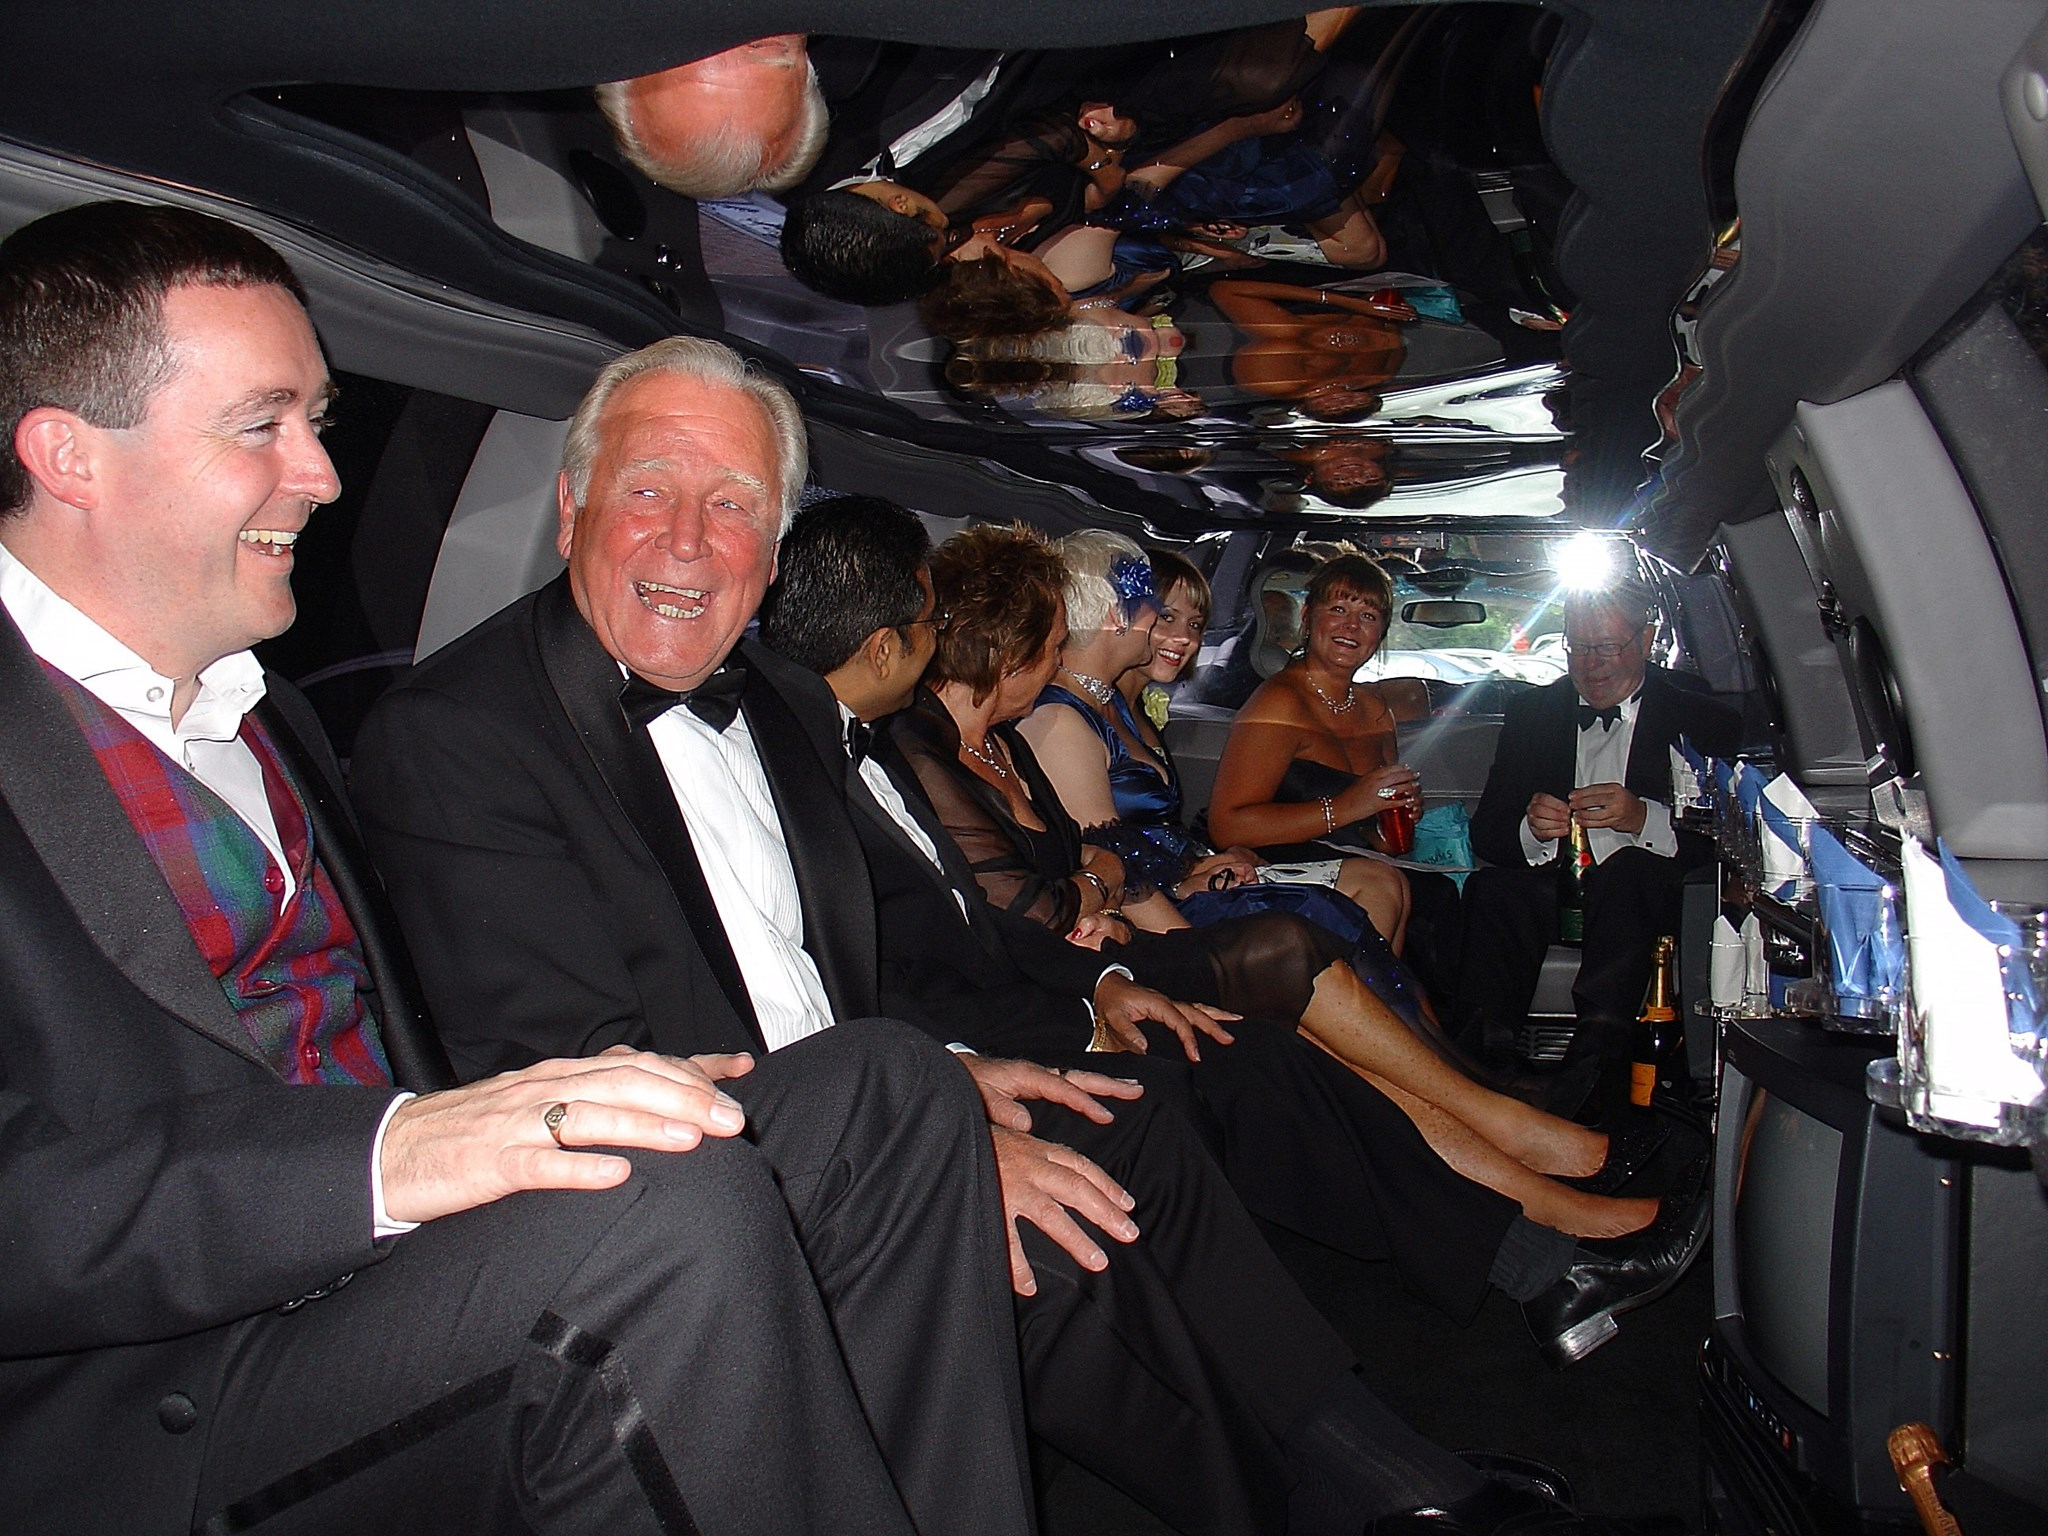 In a limo, on route to a charity function at Anthea Turner's house in 2004